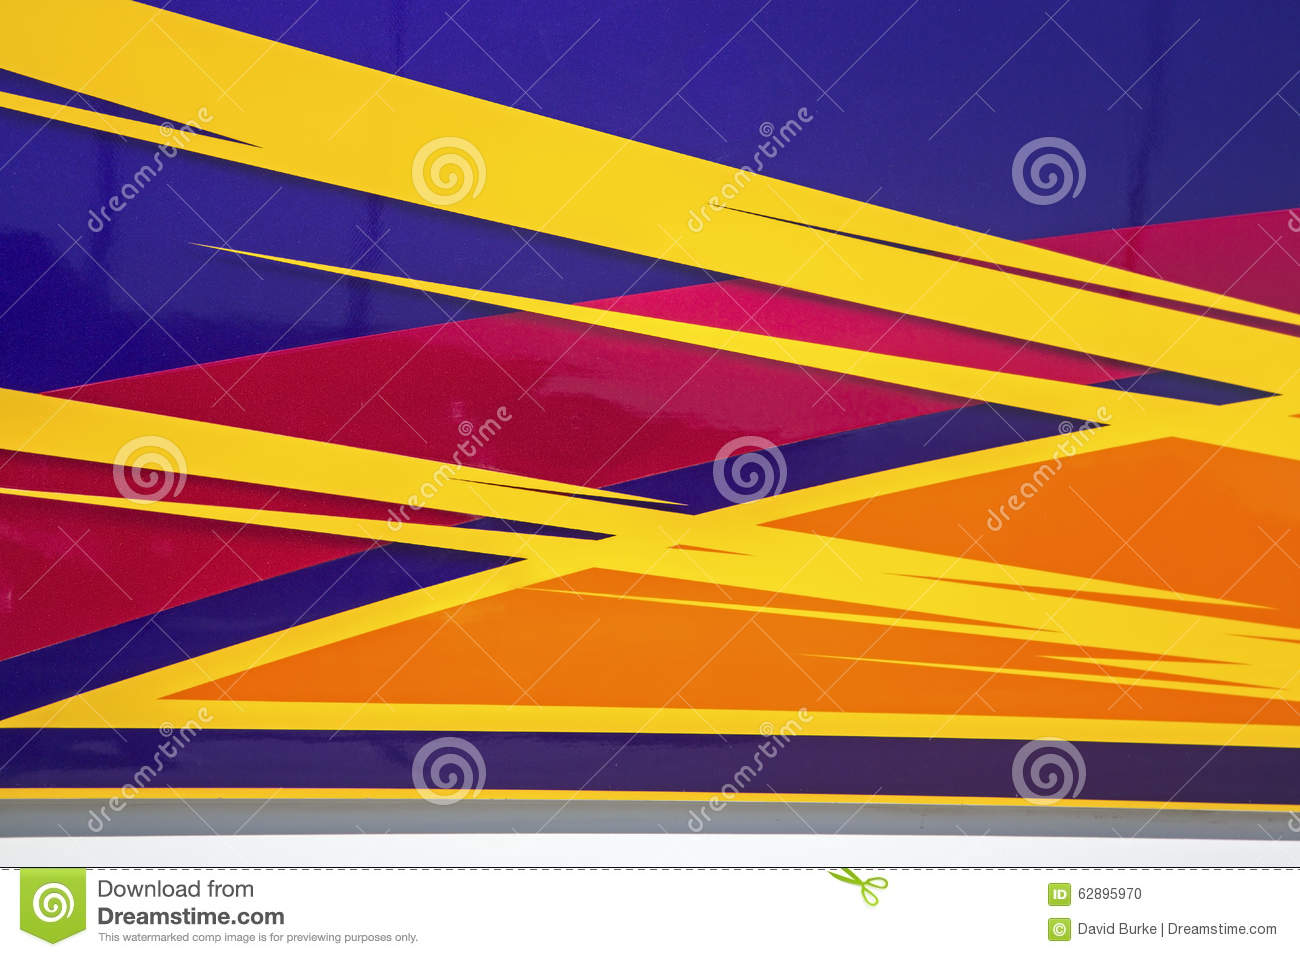 Royalty Free Stock Photo Download Racing Stripes Streaks Colorful Background